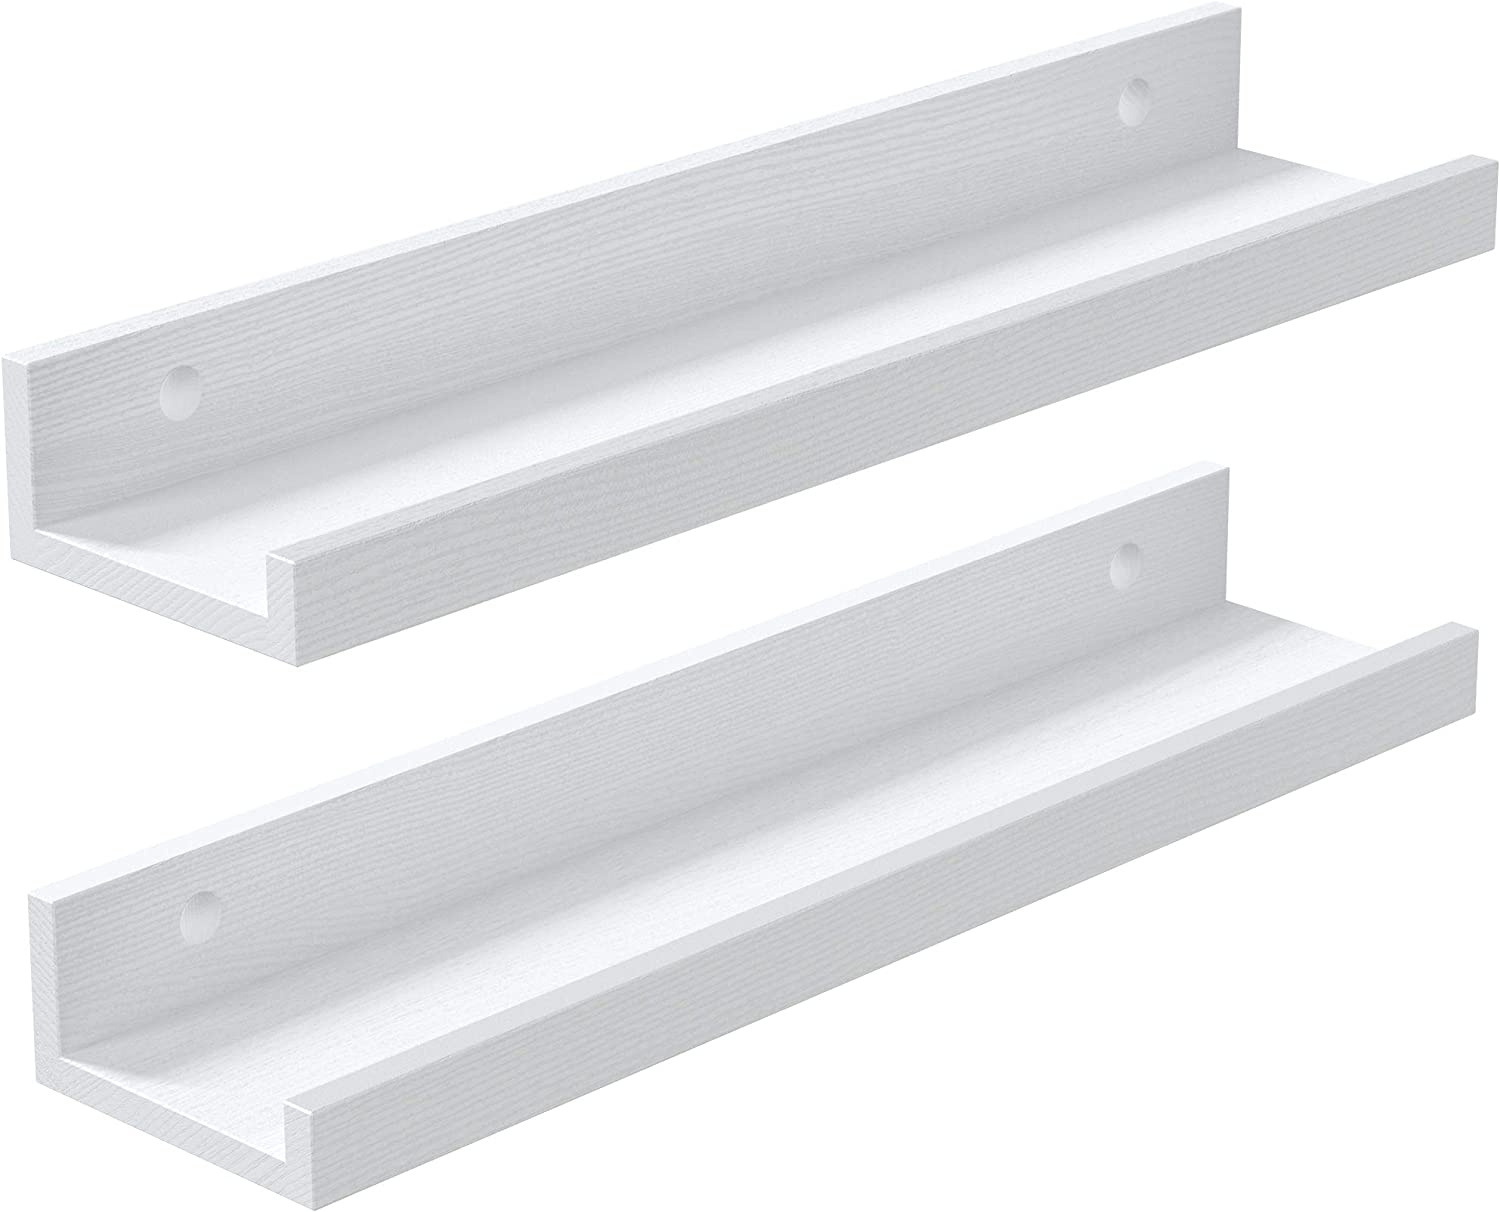 Tibres | Floating Shelves for Kids Room Bedroom | Wall Shelves for Girls Boys and Teens | Wall Nursery Shelves for Books Trophies Photos Pictures | White | Solid Wood | Set of 2